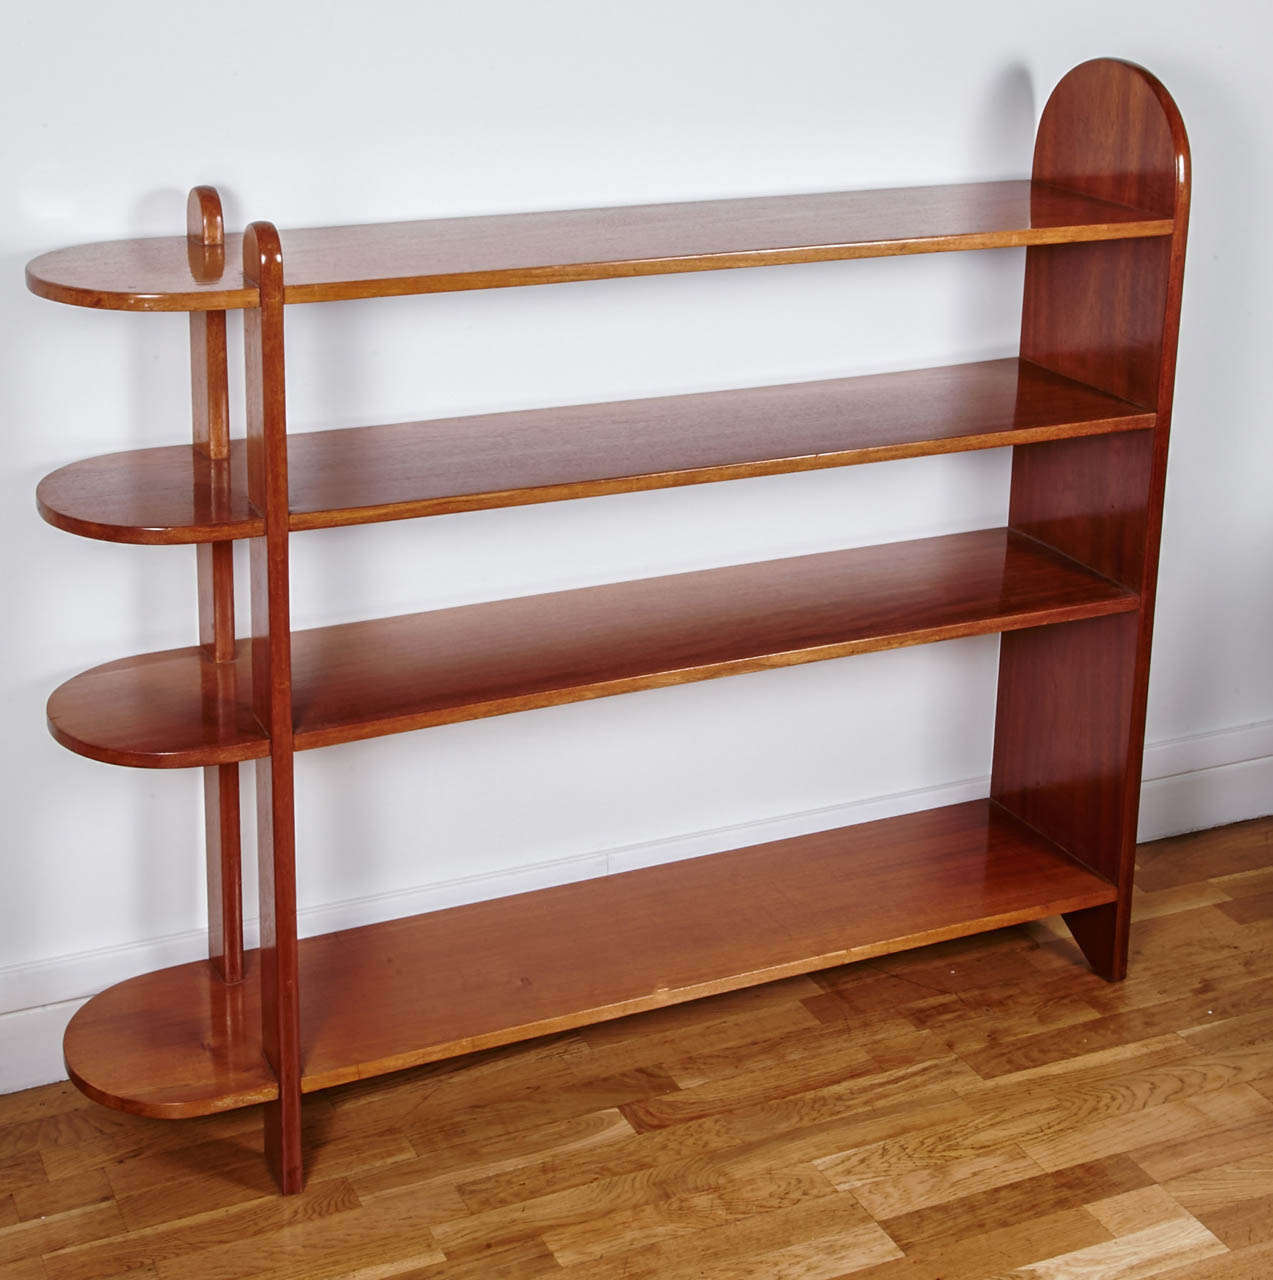 Light mahogany shelves bookcase with four shelves. One side of each shelf has an arc of a circle shape. 1932 iconic model from Eugène Printz.